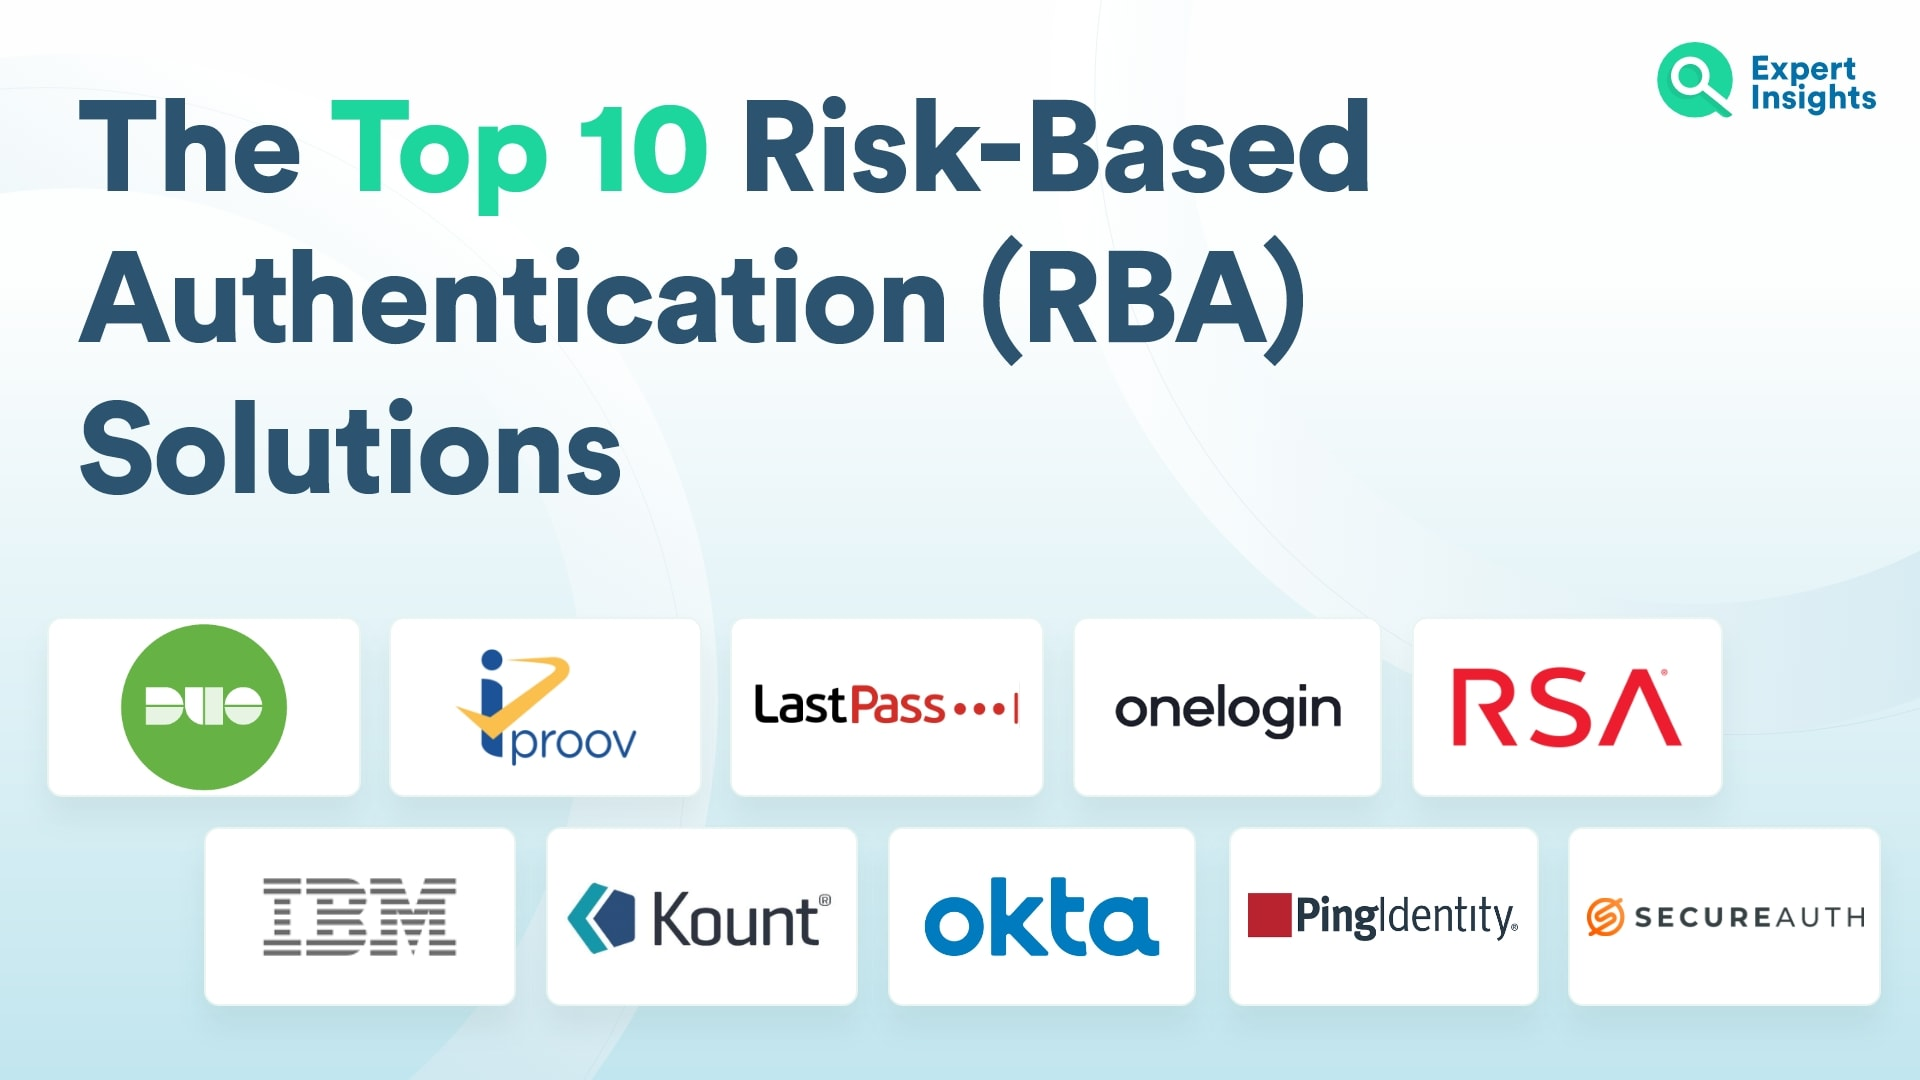 Top 10 Risk-Based Authentication (RBA) Solutions - Expert Insights